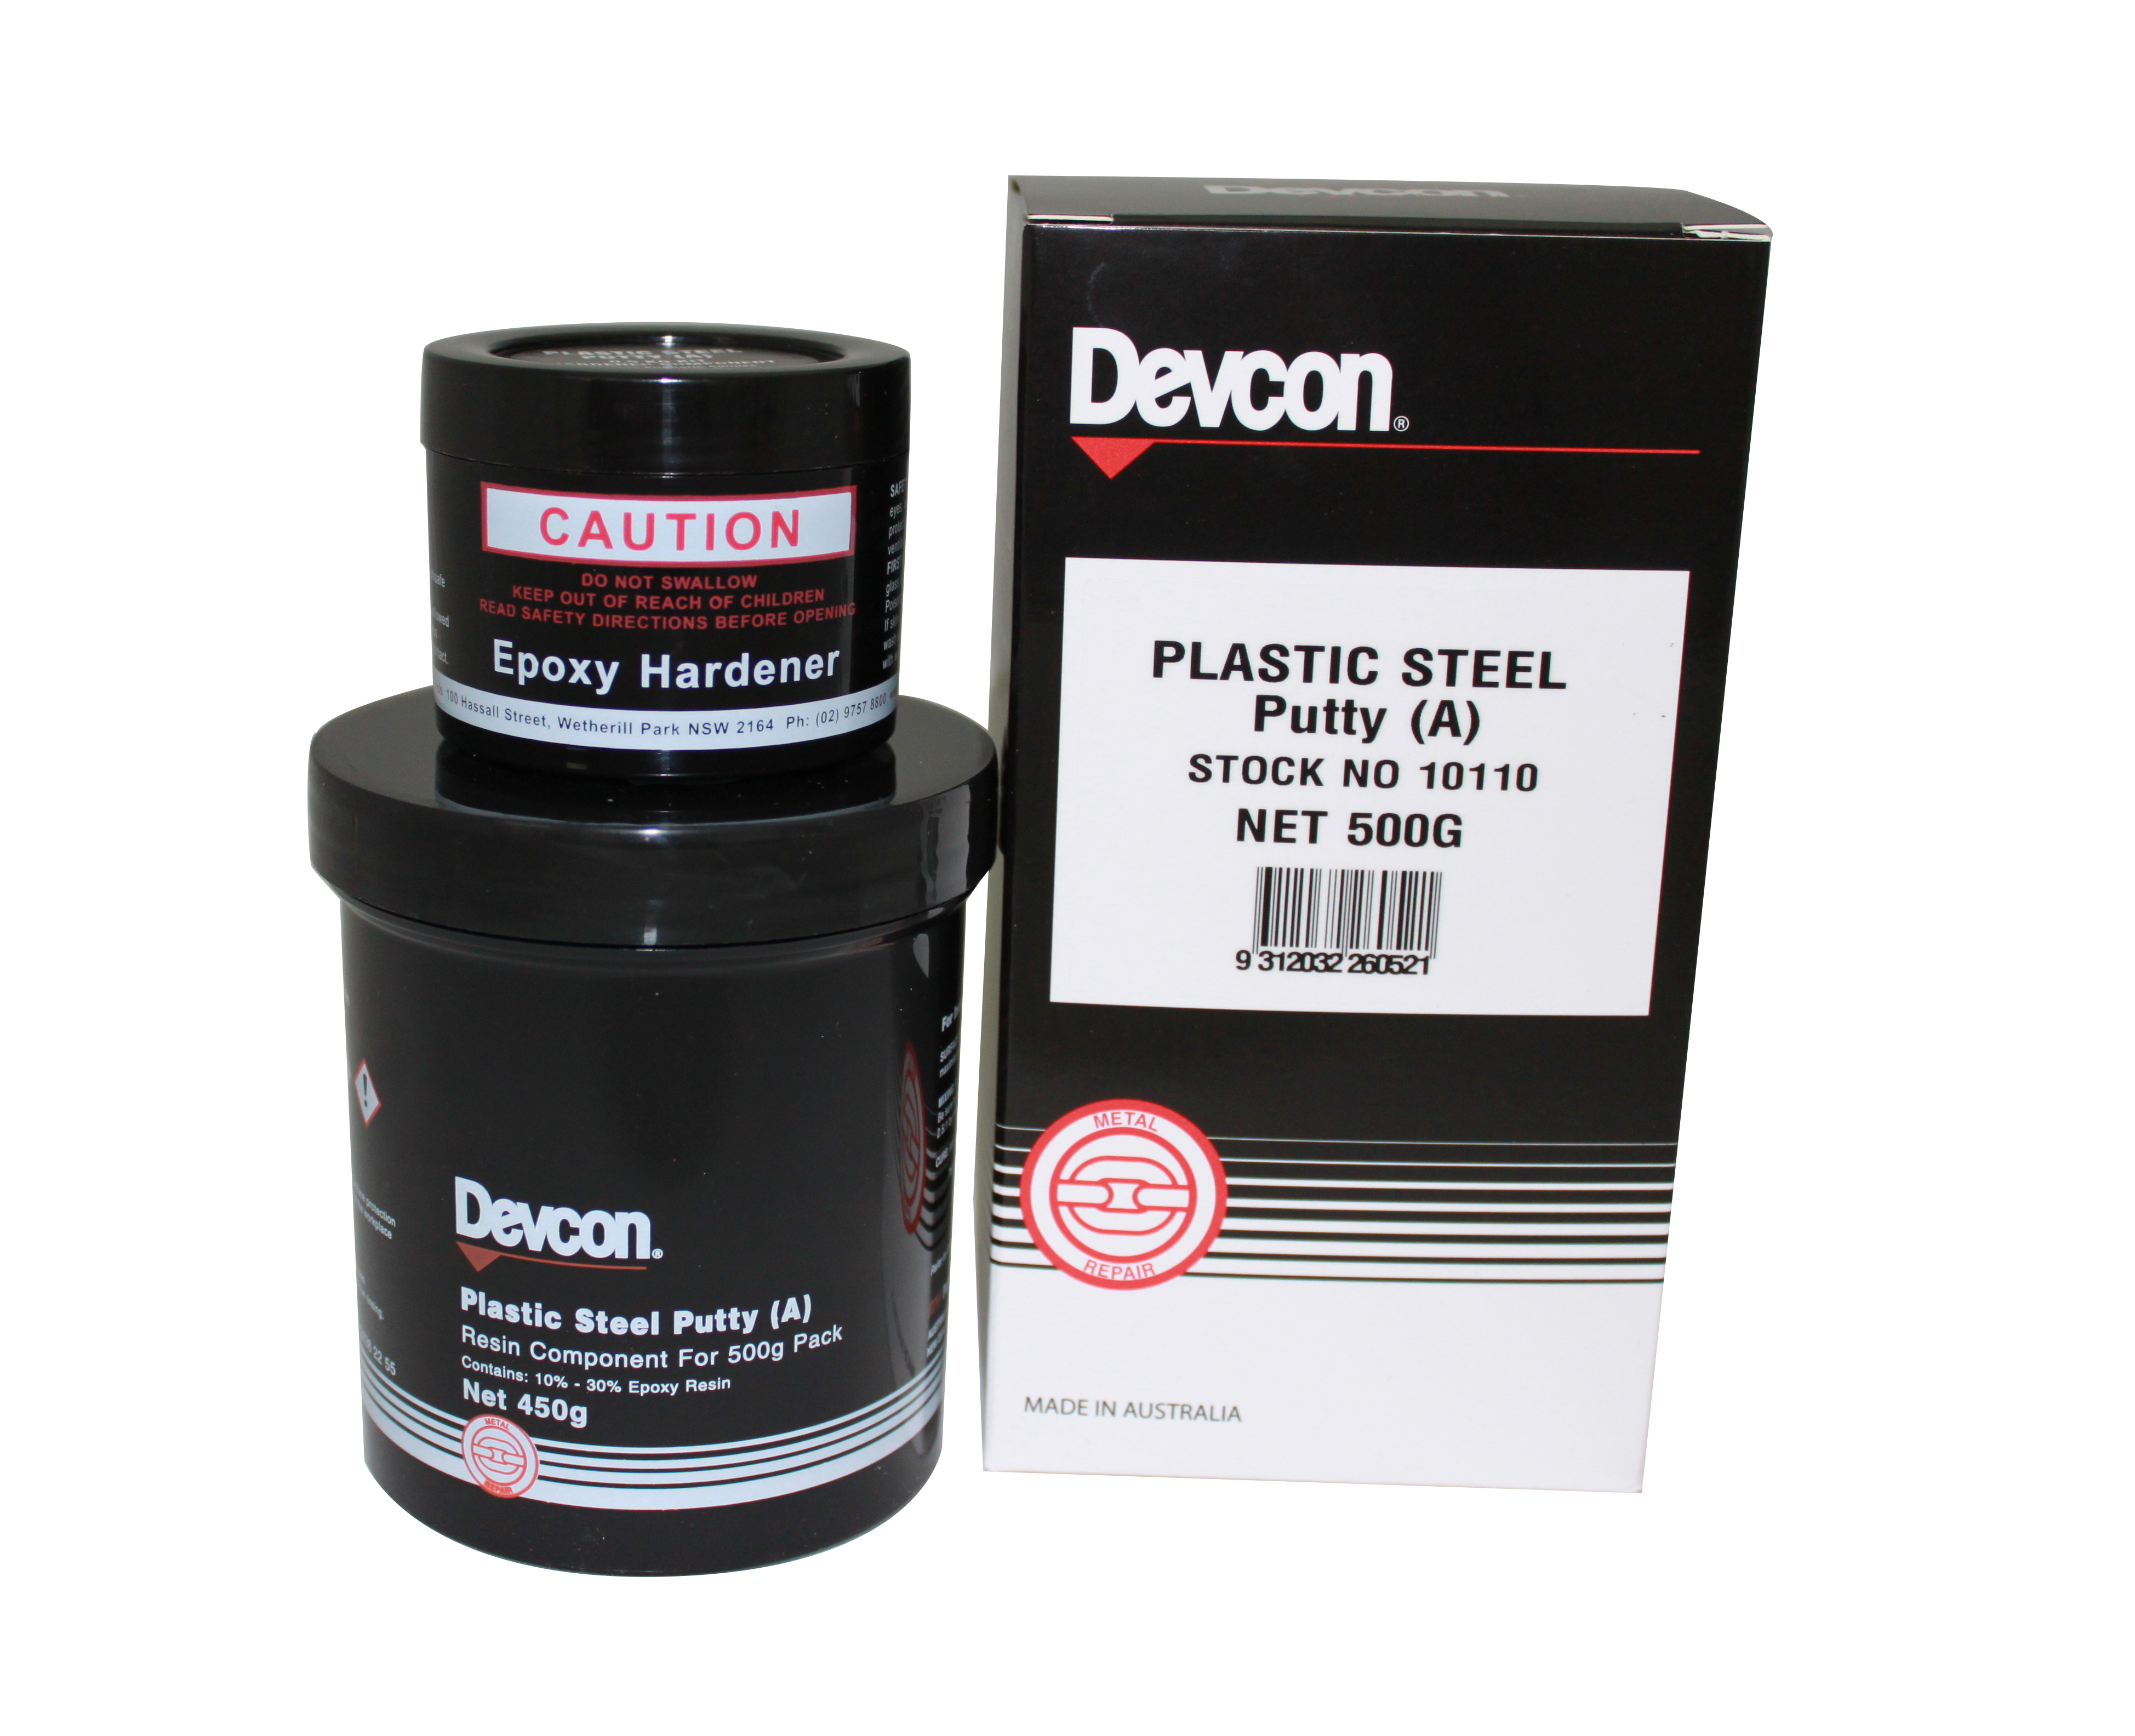 Plastic Steel Putty (A) – For filling, rebuilding and bonding metal surfaces.